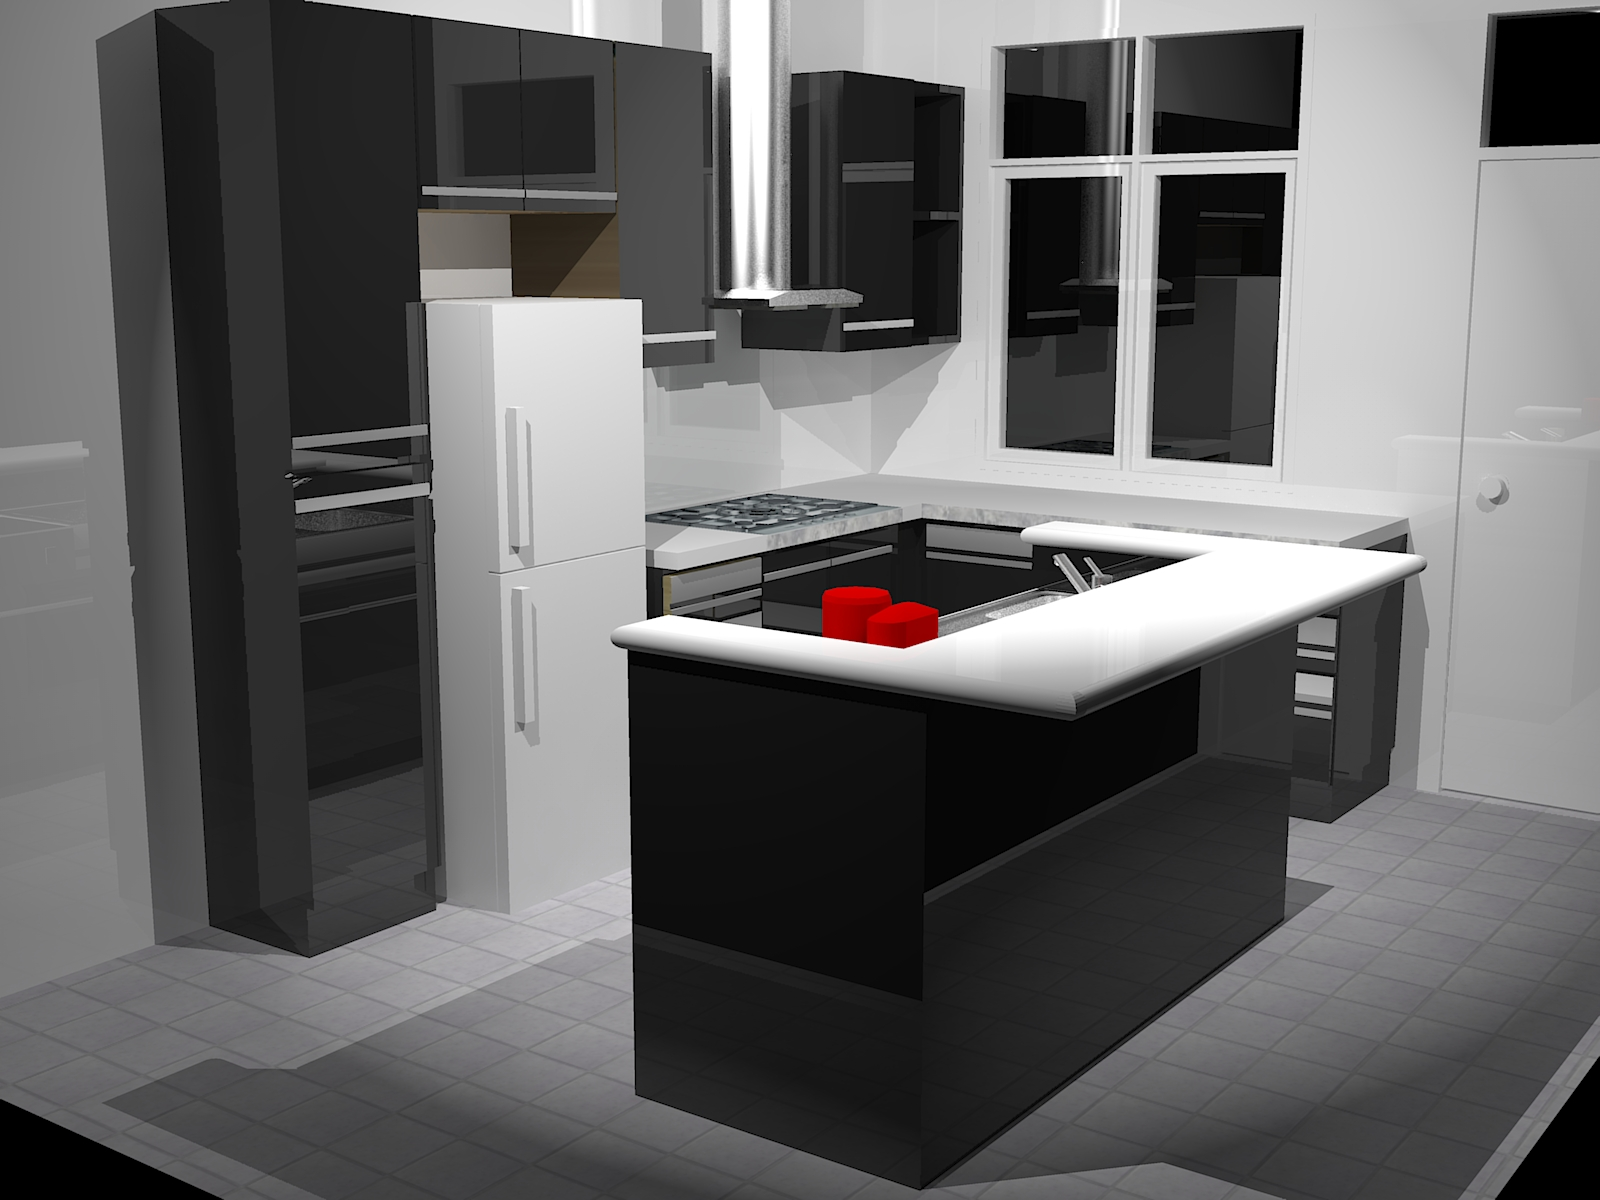 Custom kitchen craze for 11 x 8 kitchen designs